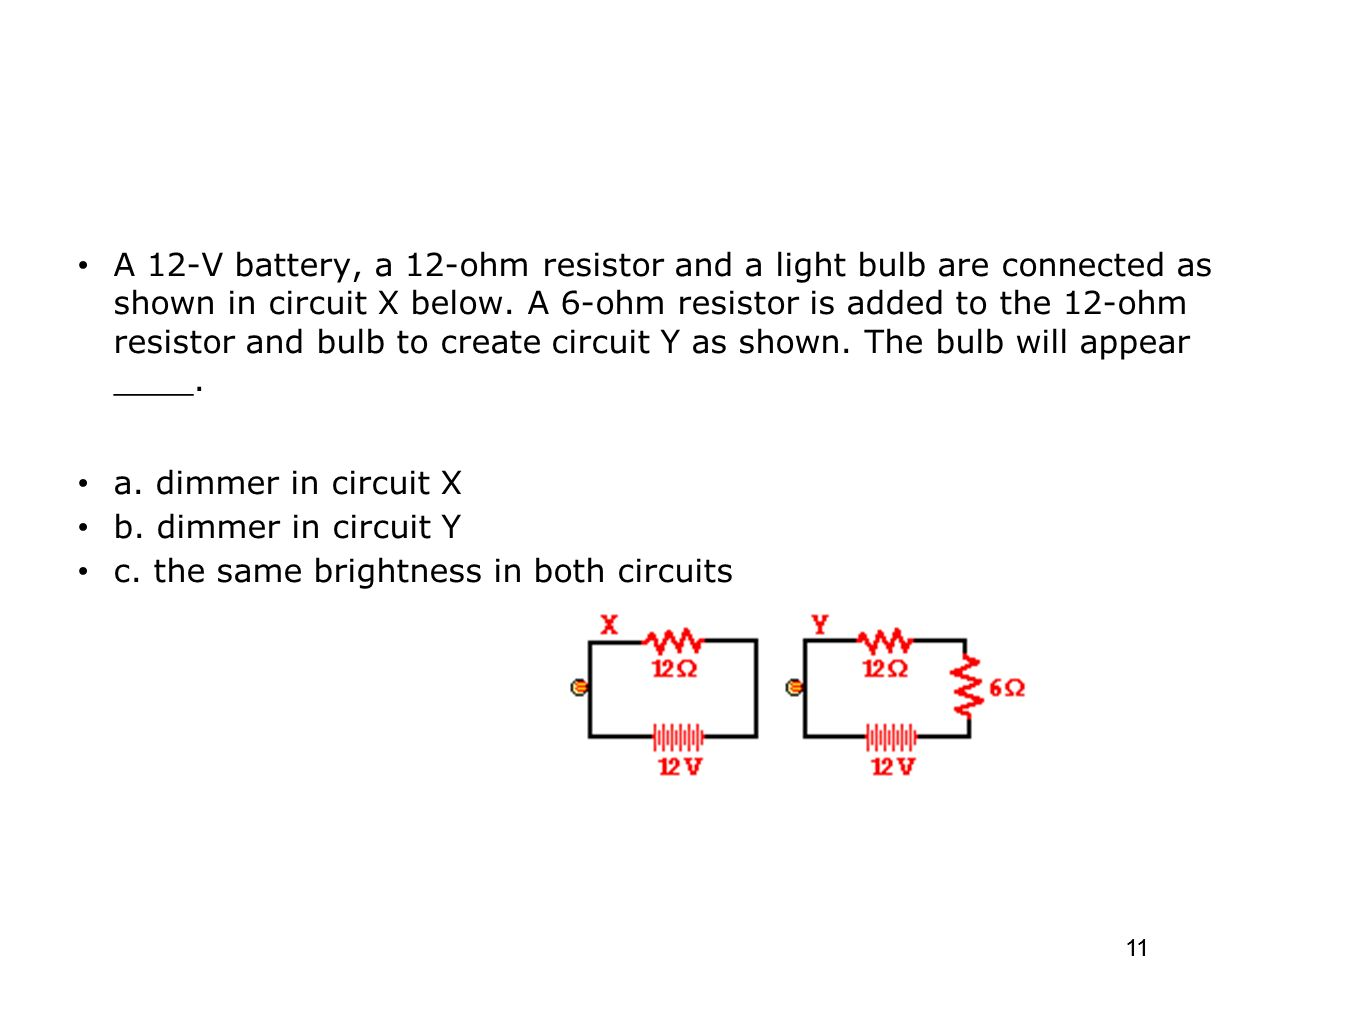 Series And Parallel Circuits Ppt Download In A Circuit With Battery Each Lightbulb The C Same Brightness Both